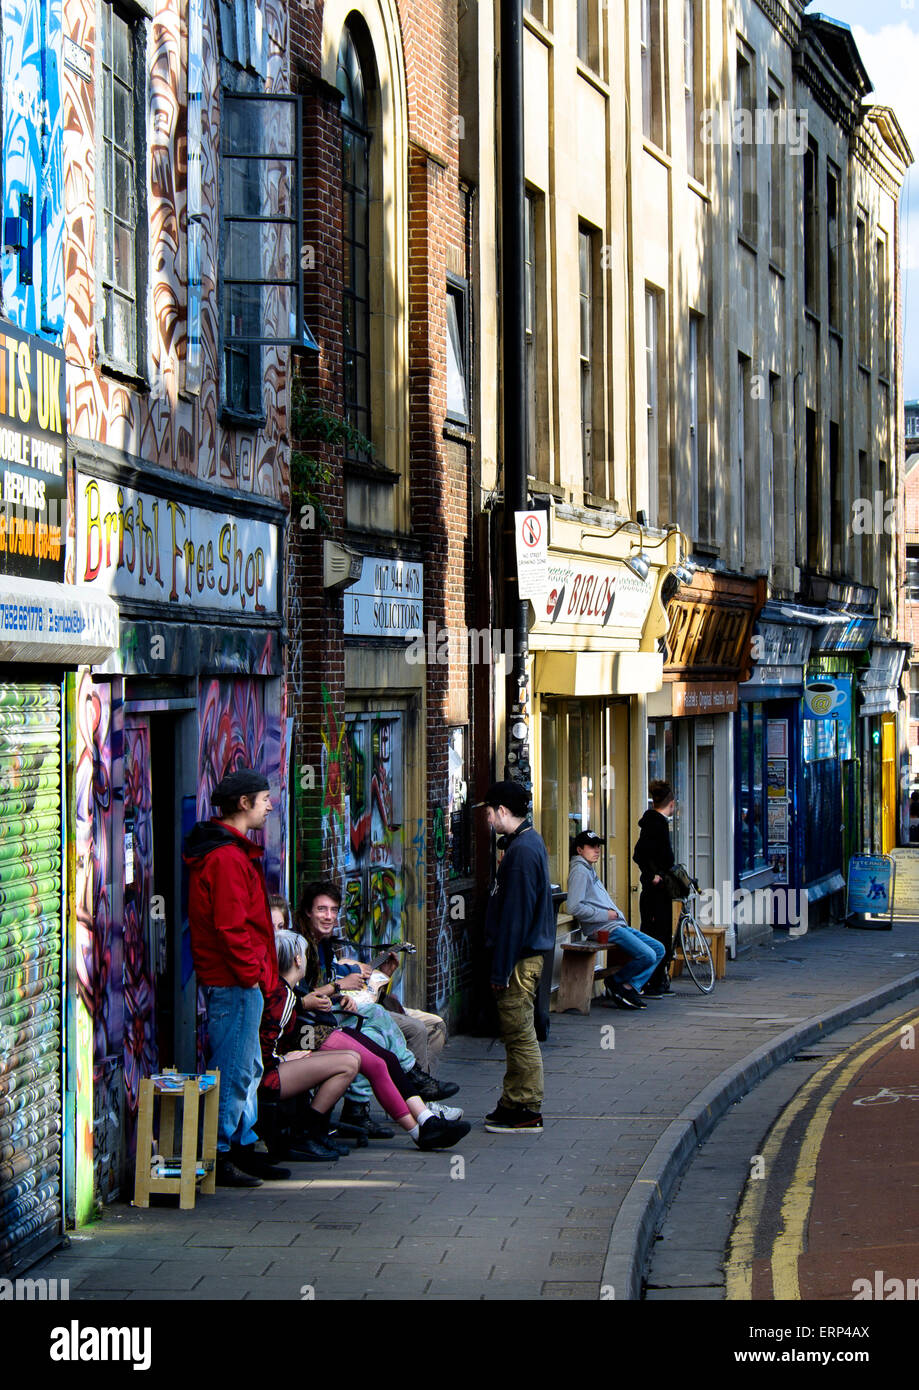 29 May 2015 - Bristol, UK : Early Friday Evening on Stokes Croft, a group gather outside the Bristol Free Shop - Stock Image